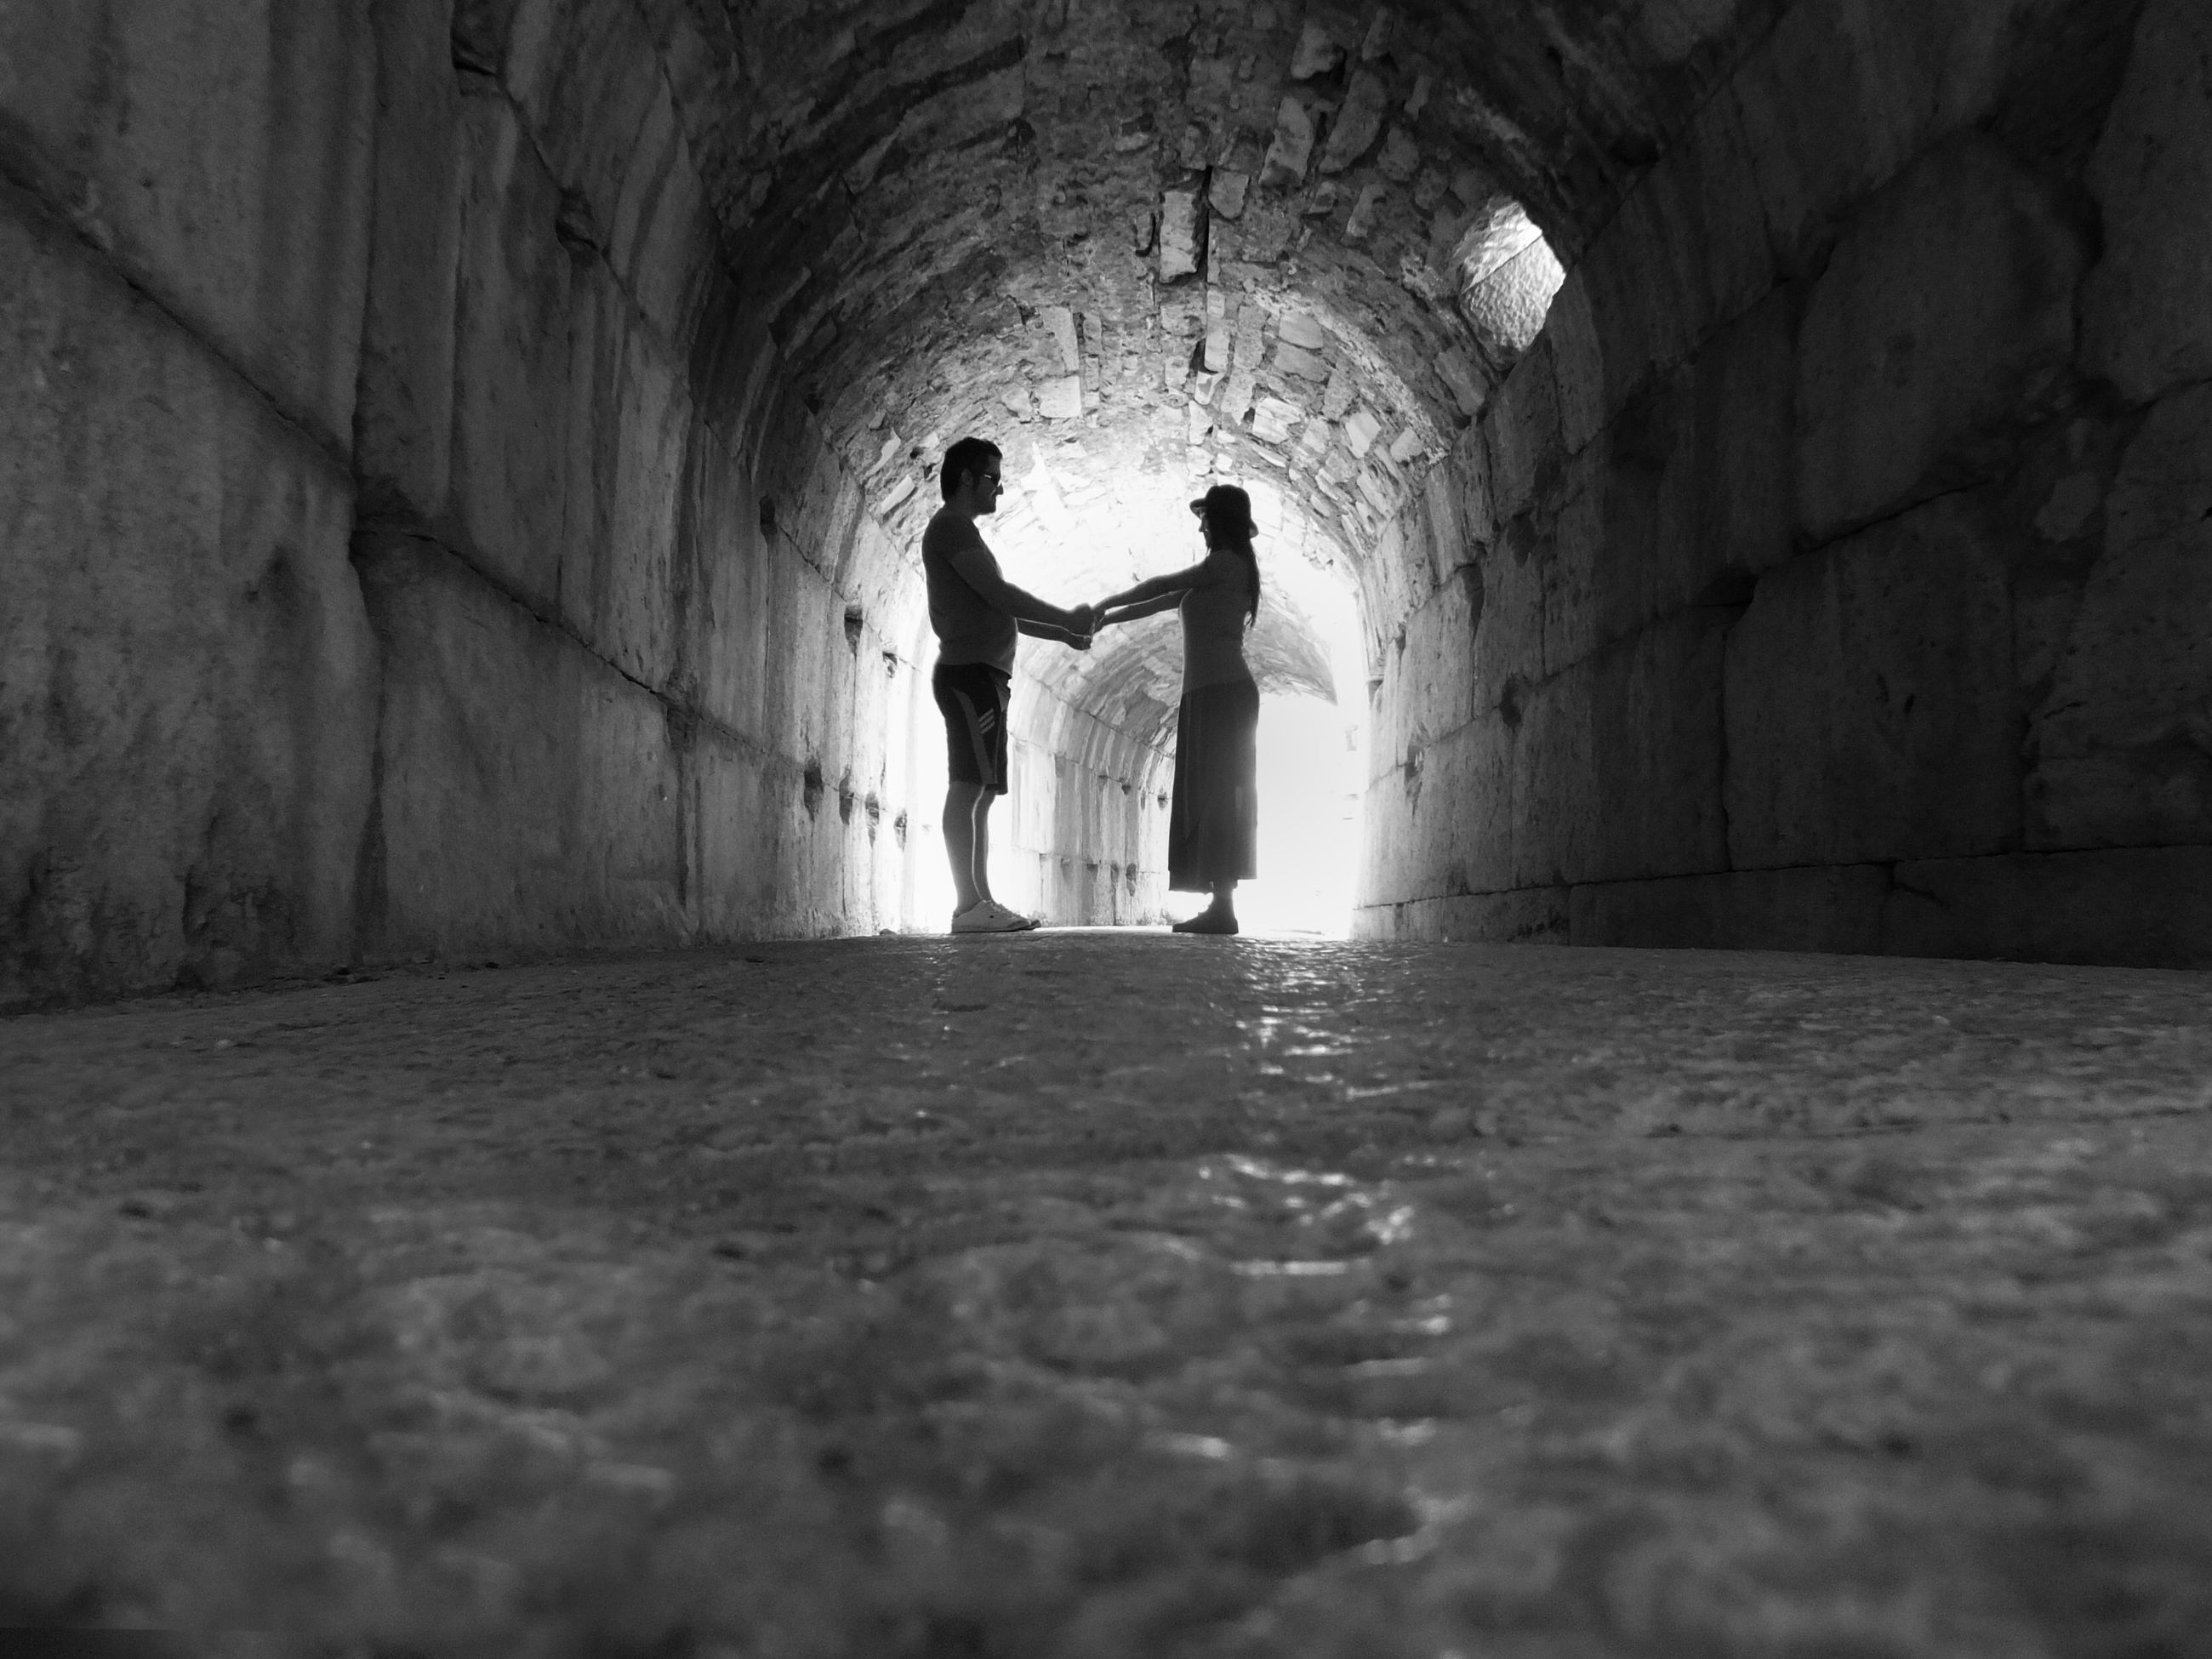 indoors, silhouette, men, full length, lifestyles, leisure activity, standing, wall - building feature, tunnel, rear view, walking, architecture, shadow, built structure, wall, outline, dark